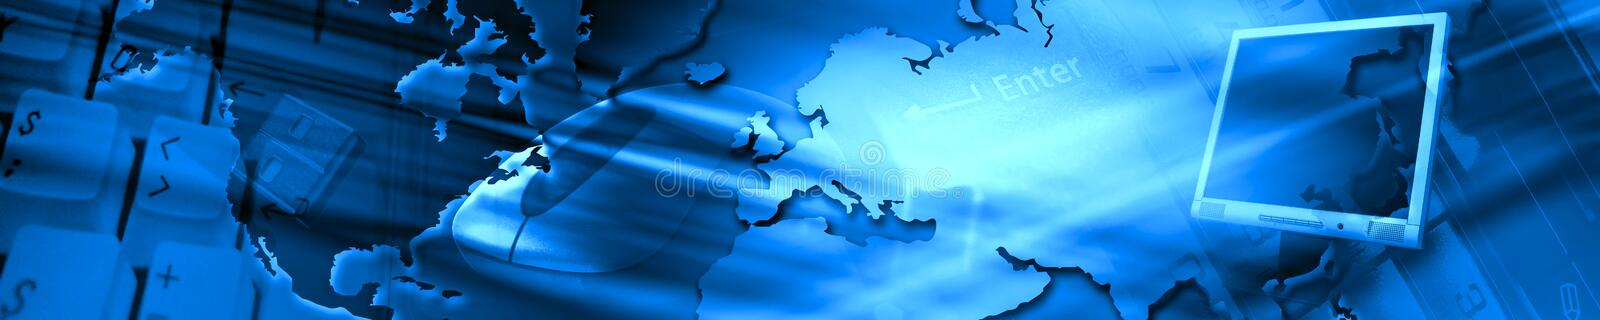 Header stock illustration